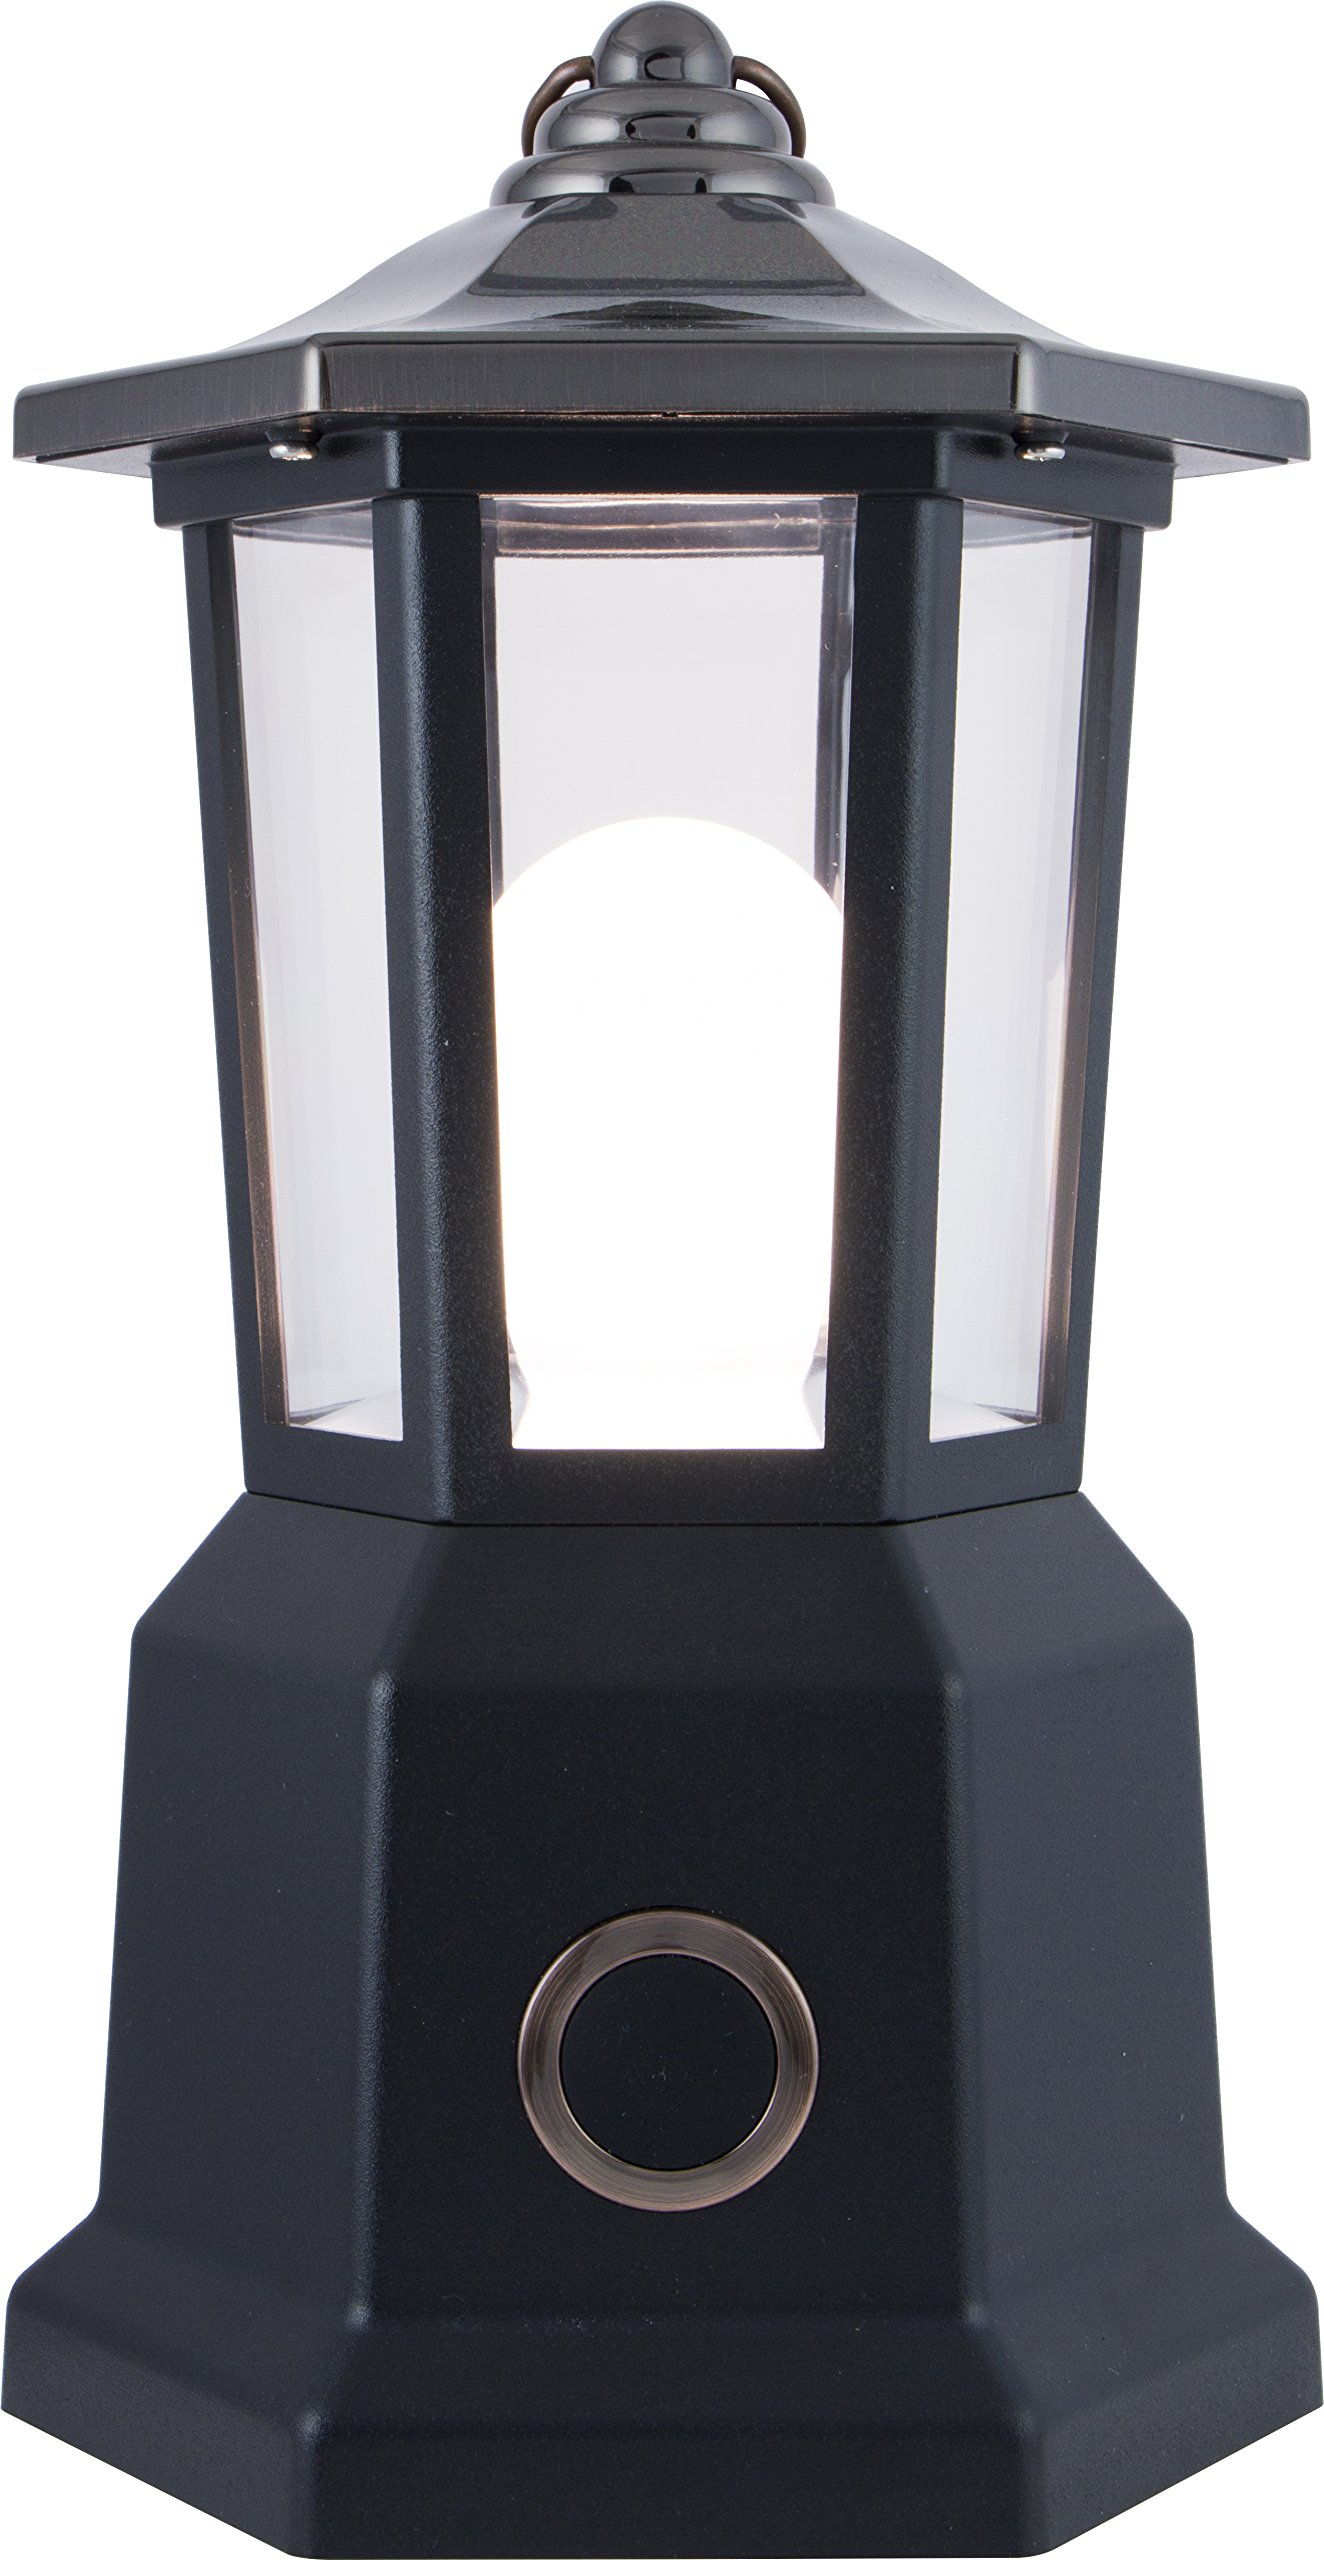 Enbrighten 10626 LED Patio Carriage Lantern, Battery Operated, Oil Rubbed Bronze Finish, Contemporary Design, 150 Lumens, Water Resistant